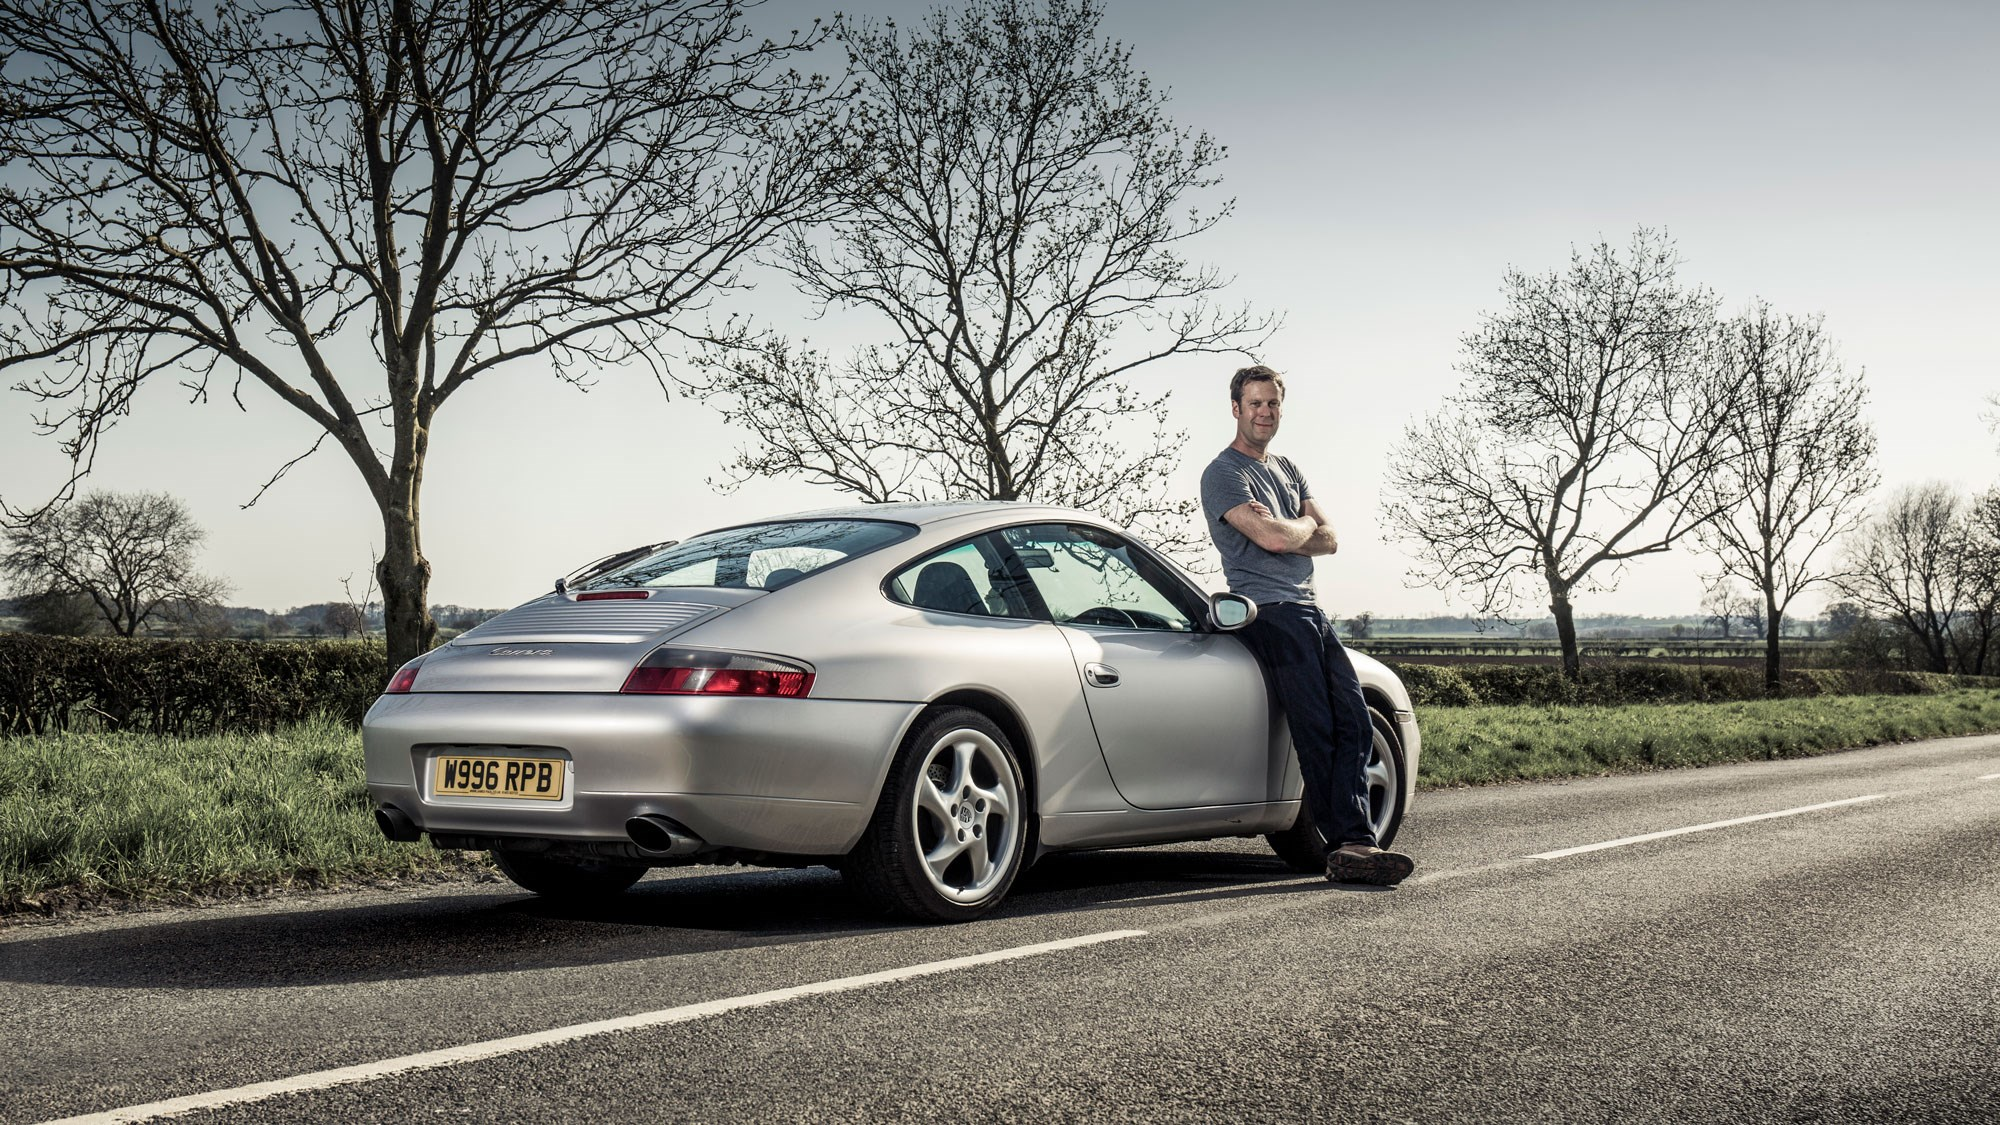 b979411da28 ... Icon buyer  Porsche 911 (996) buying guide ...